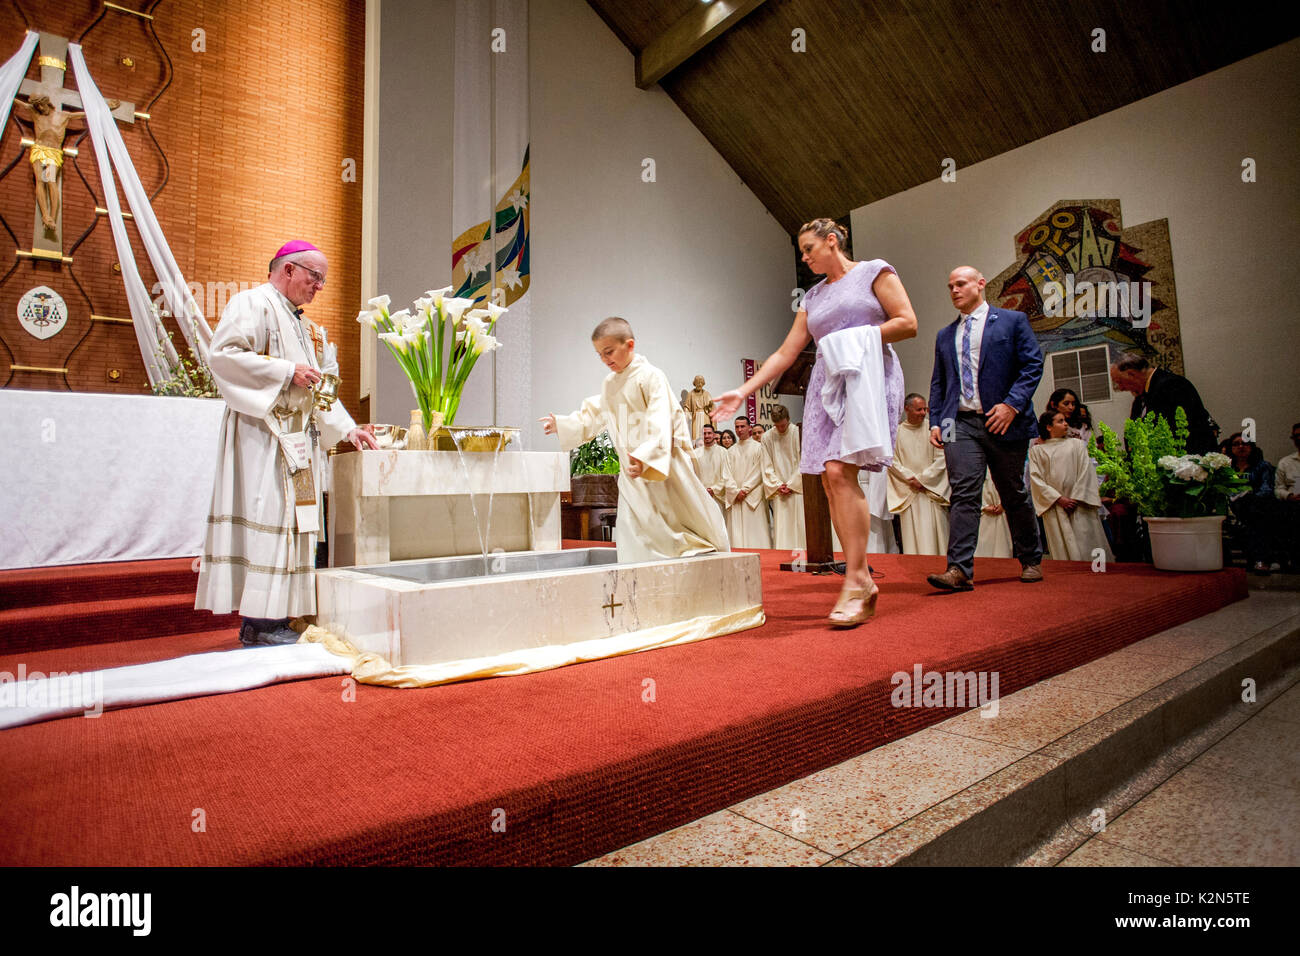 Accompanied by his parents and sponsors, a boy wearing a baptism robe enters the font at a Catholic cathedral in Orange, CA. Note bishop at left. Note other baptism candidates in background. - Stock Image